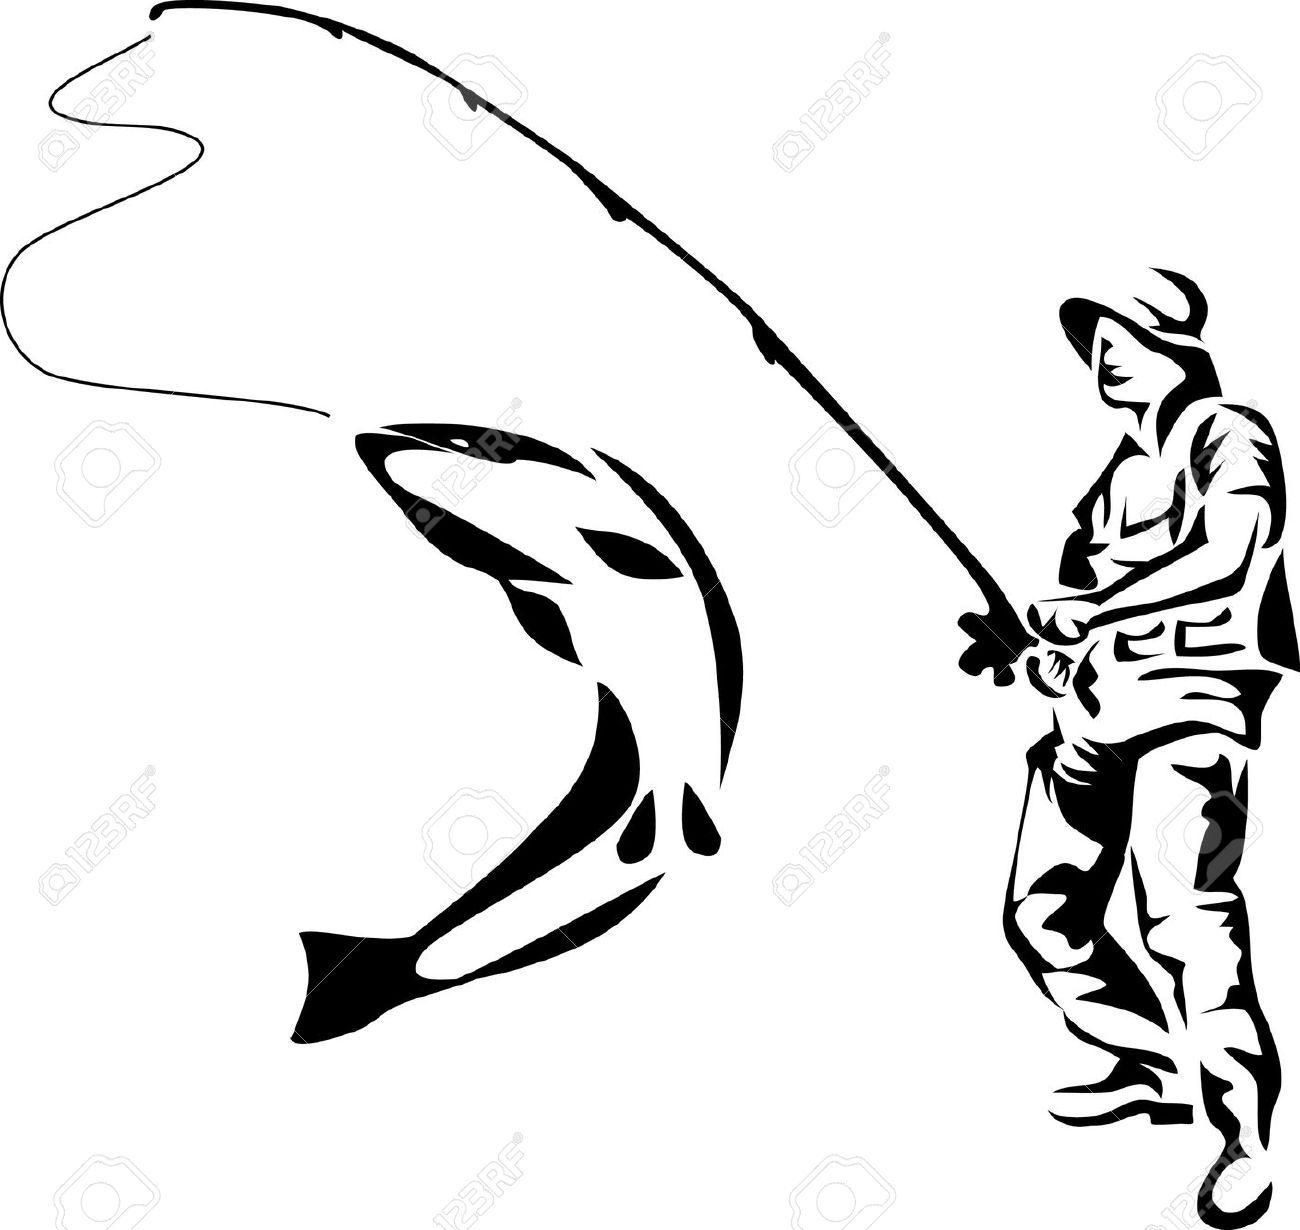 Images google search silhouette. Fisherman clipart salmon fishing